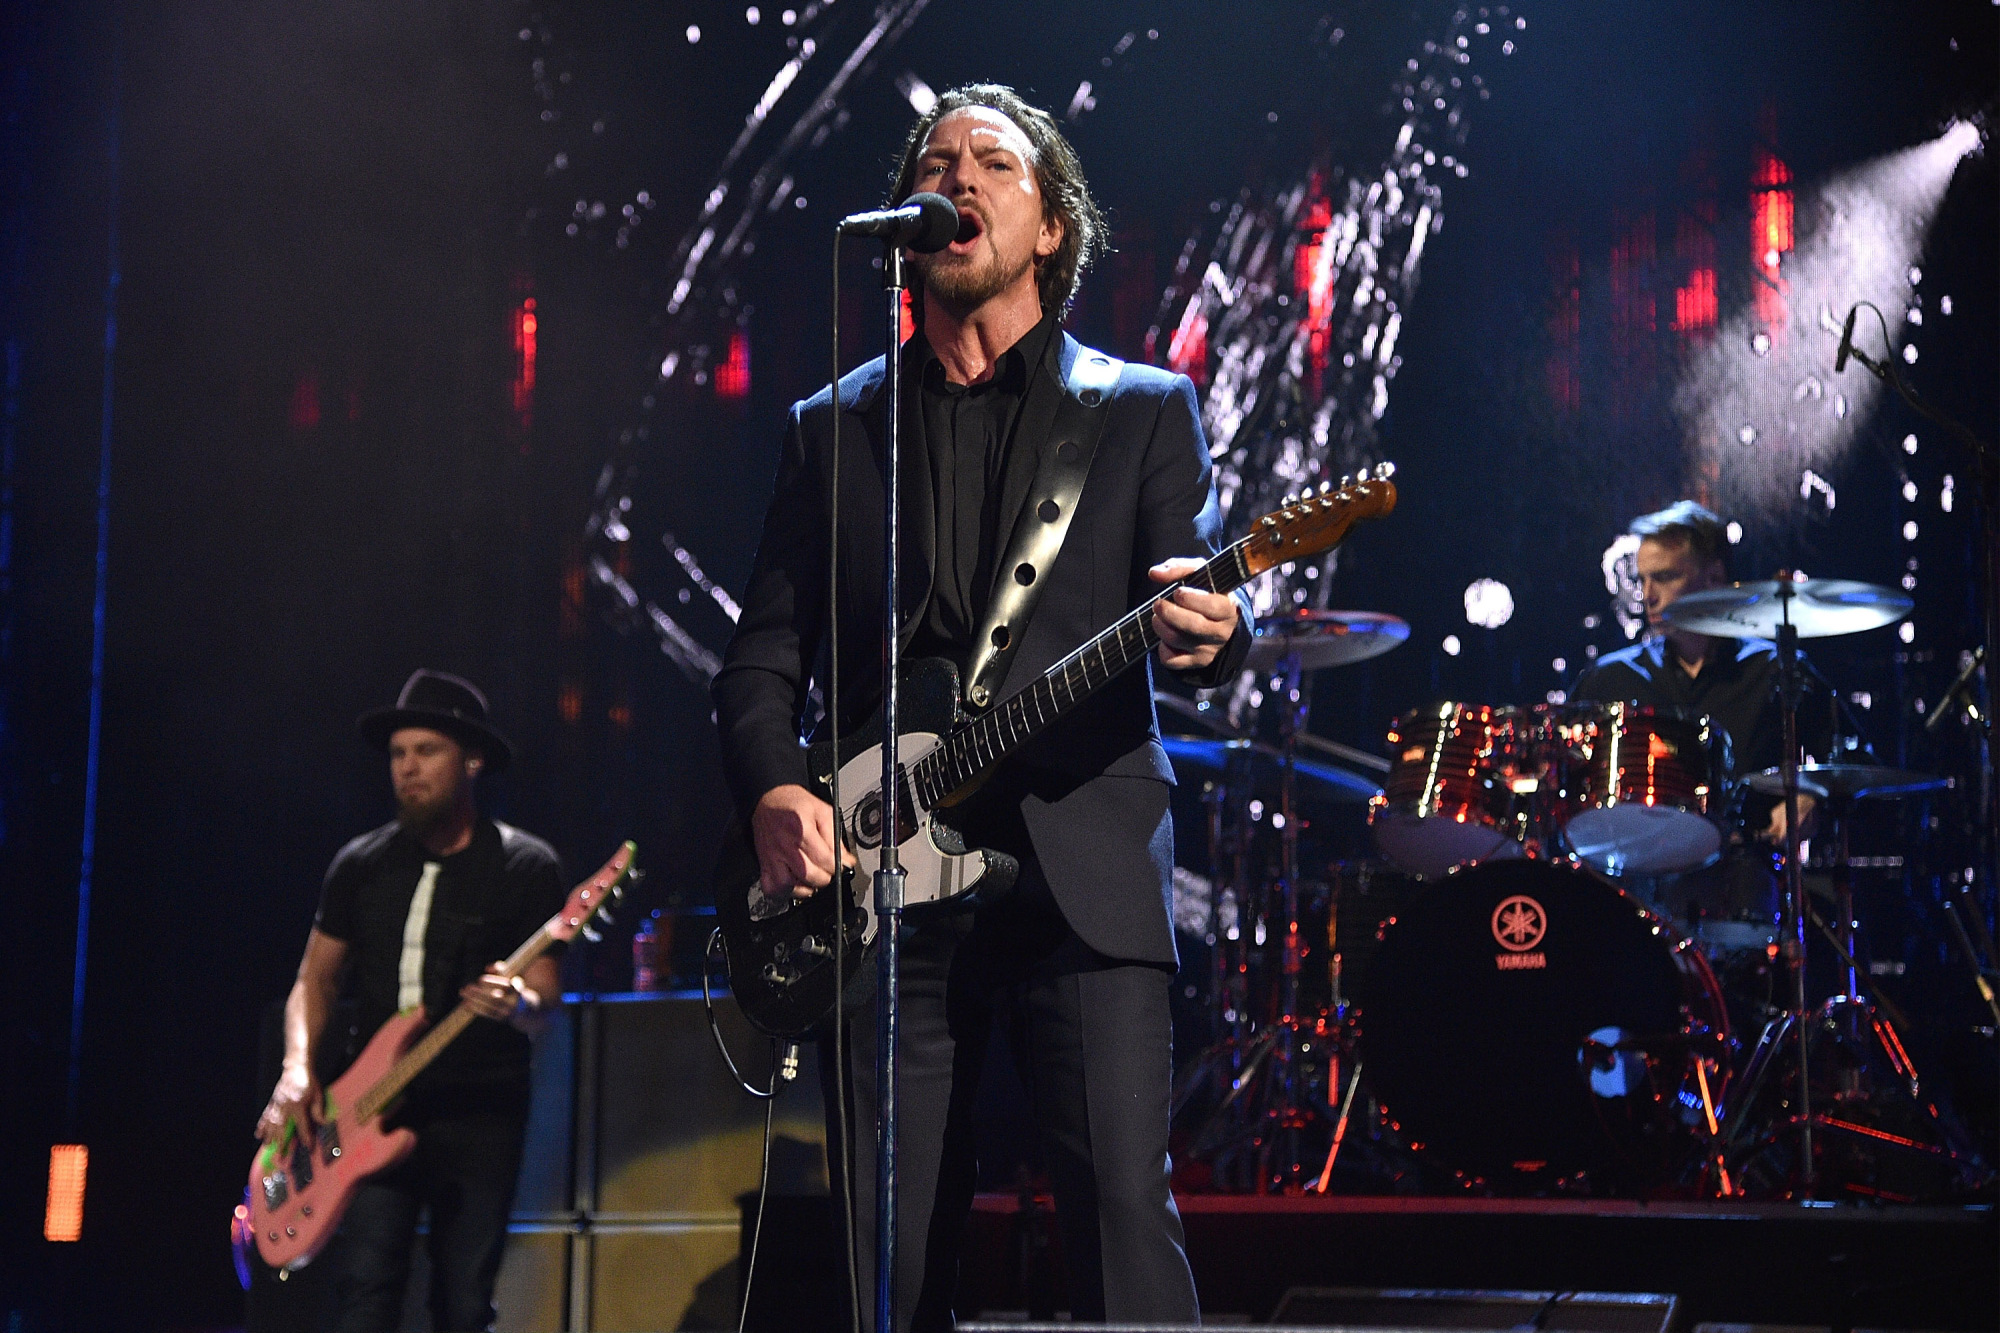 NEW YORK, NY - APRIL 07: Inductees Mike McCready, Matt Cameron, Jeff Ament and Eddie Vedder of Pearl Jam perform onstage during the 32nd Annual Rock & Roll Hall Of Fame Induction Ceremony at Barclays Center on April 7, 2017 in New York City. The broadcast will air on Saturday, April 29, 2017 at 8:00 PM ET/PT on HBO. (Photo by Kevin Mazur/WireImage for Rock and Roll Hall of Fame)